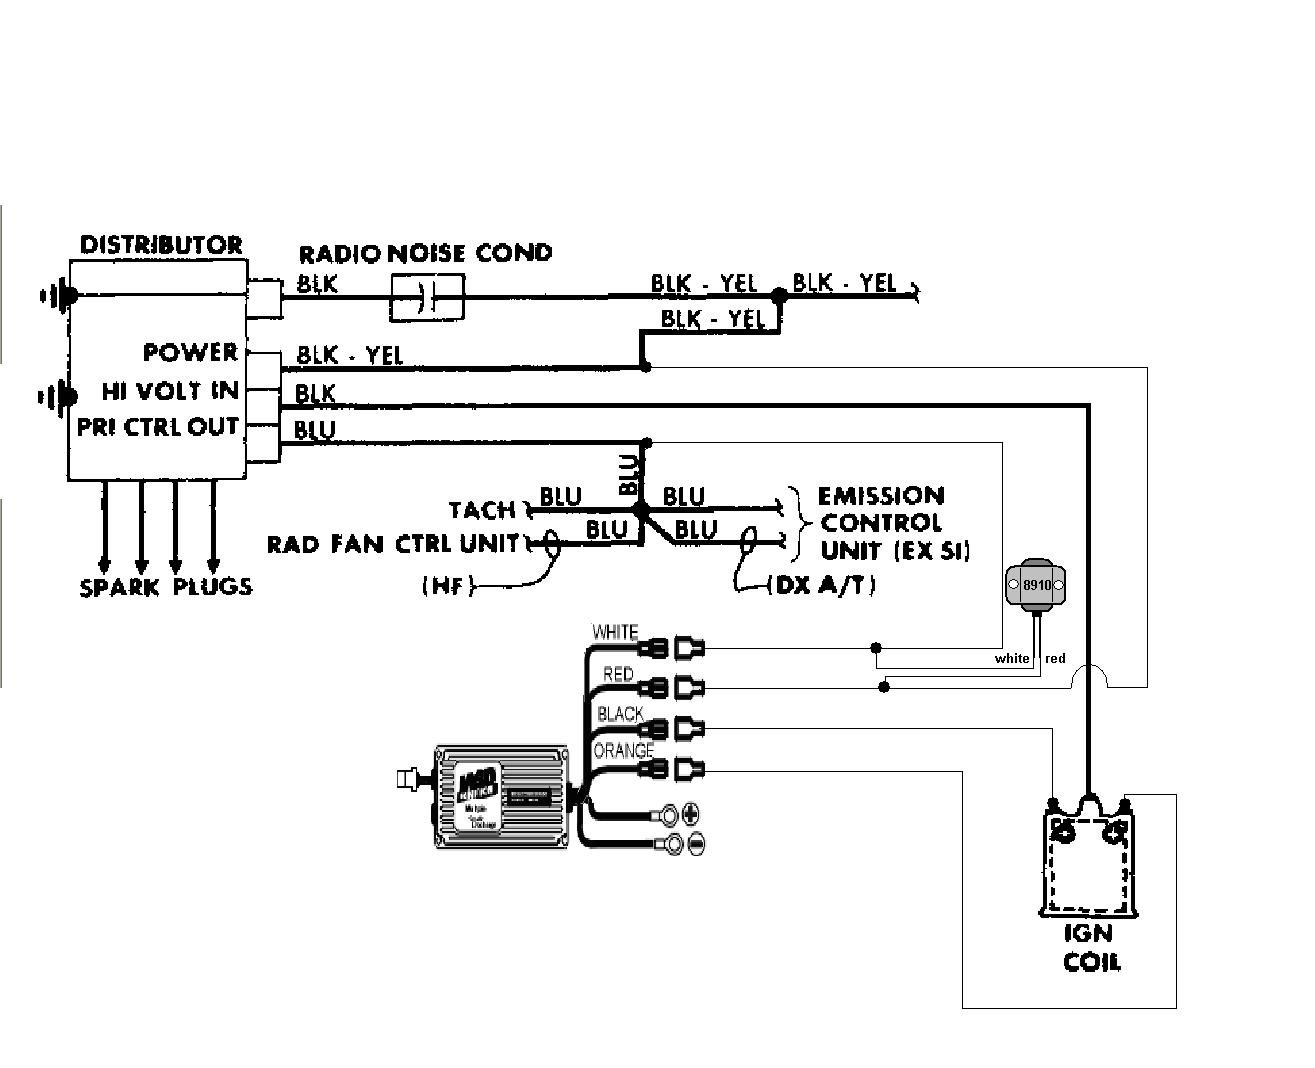 Honda Crx Tacho Wiring Diagram And Schematics Pri 1987 To 6 Series Msd Blog Sunlite Tach Aftermarket Tachometer